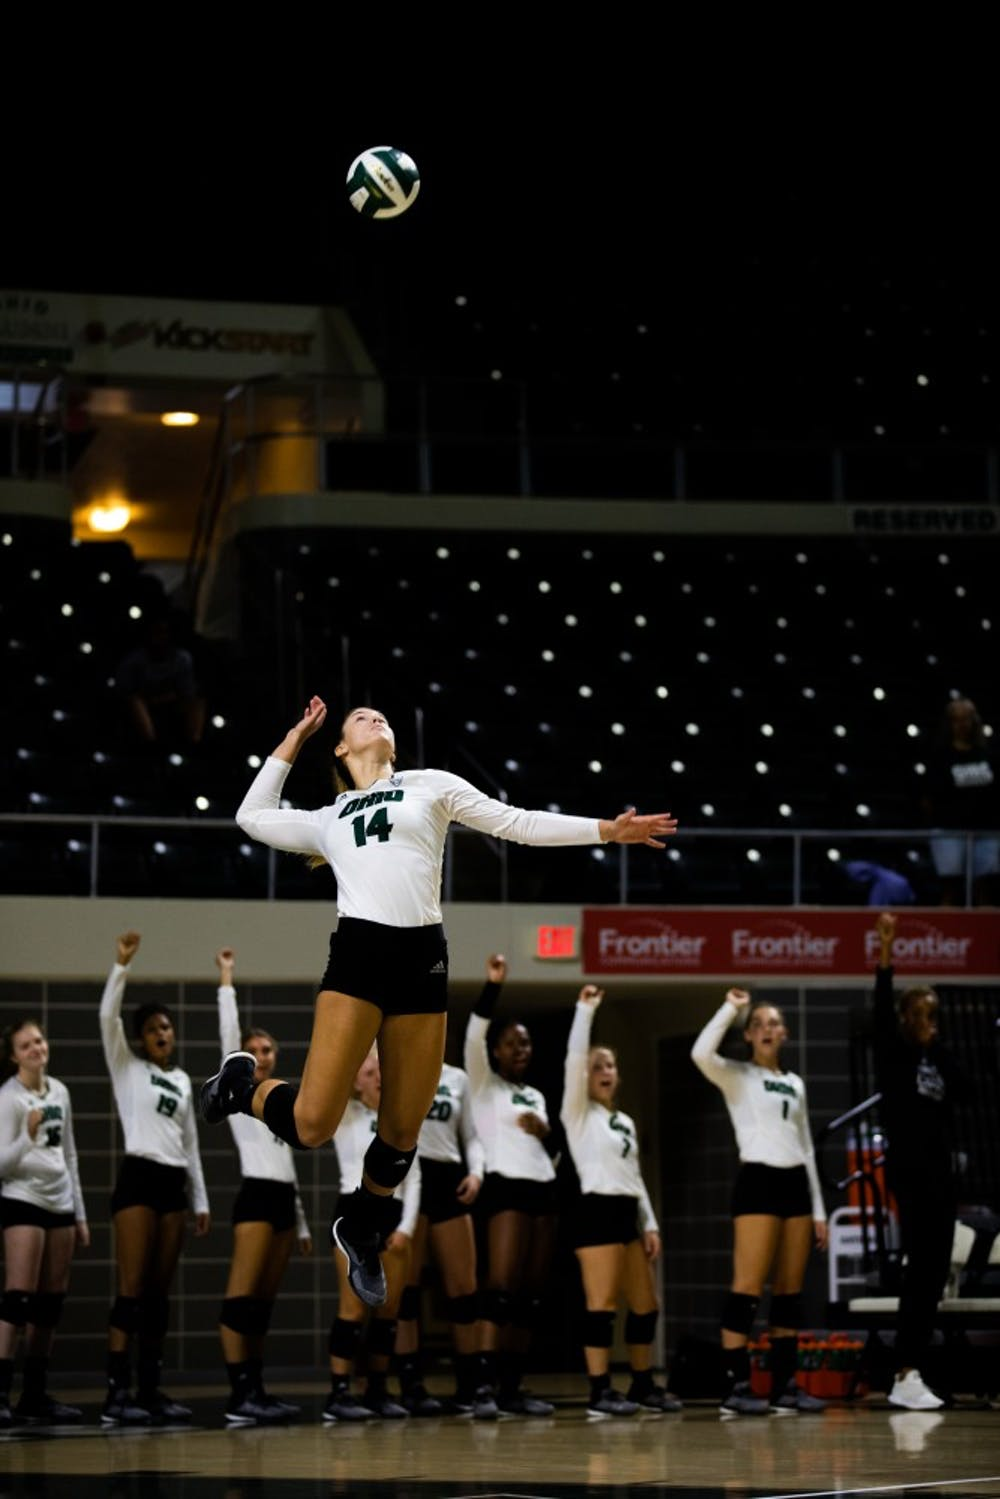 Volleyball: On Jaime Kosiorek's serve and how she's rediscovered it since an ACL injury in 2017